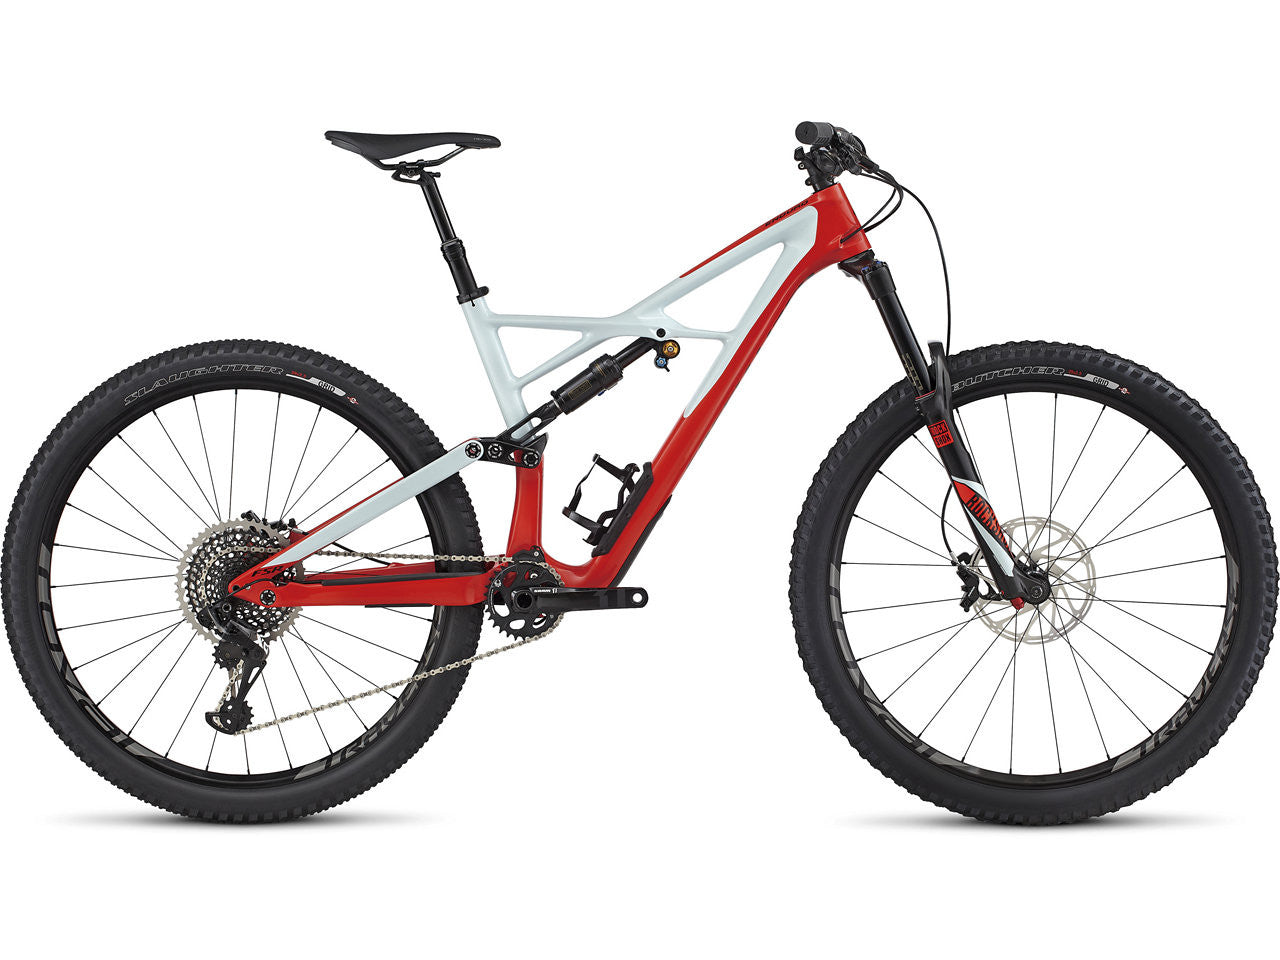 ENDURO FSR PRO CARBON 29/6FATTIE - Rocket Red/Baby Blue/Black LG